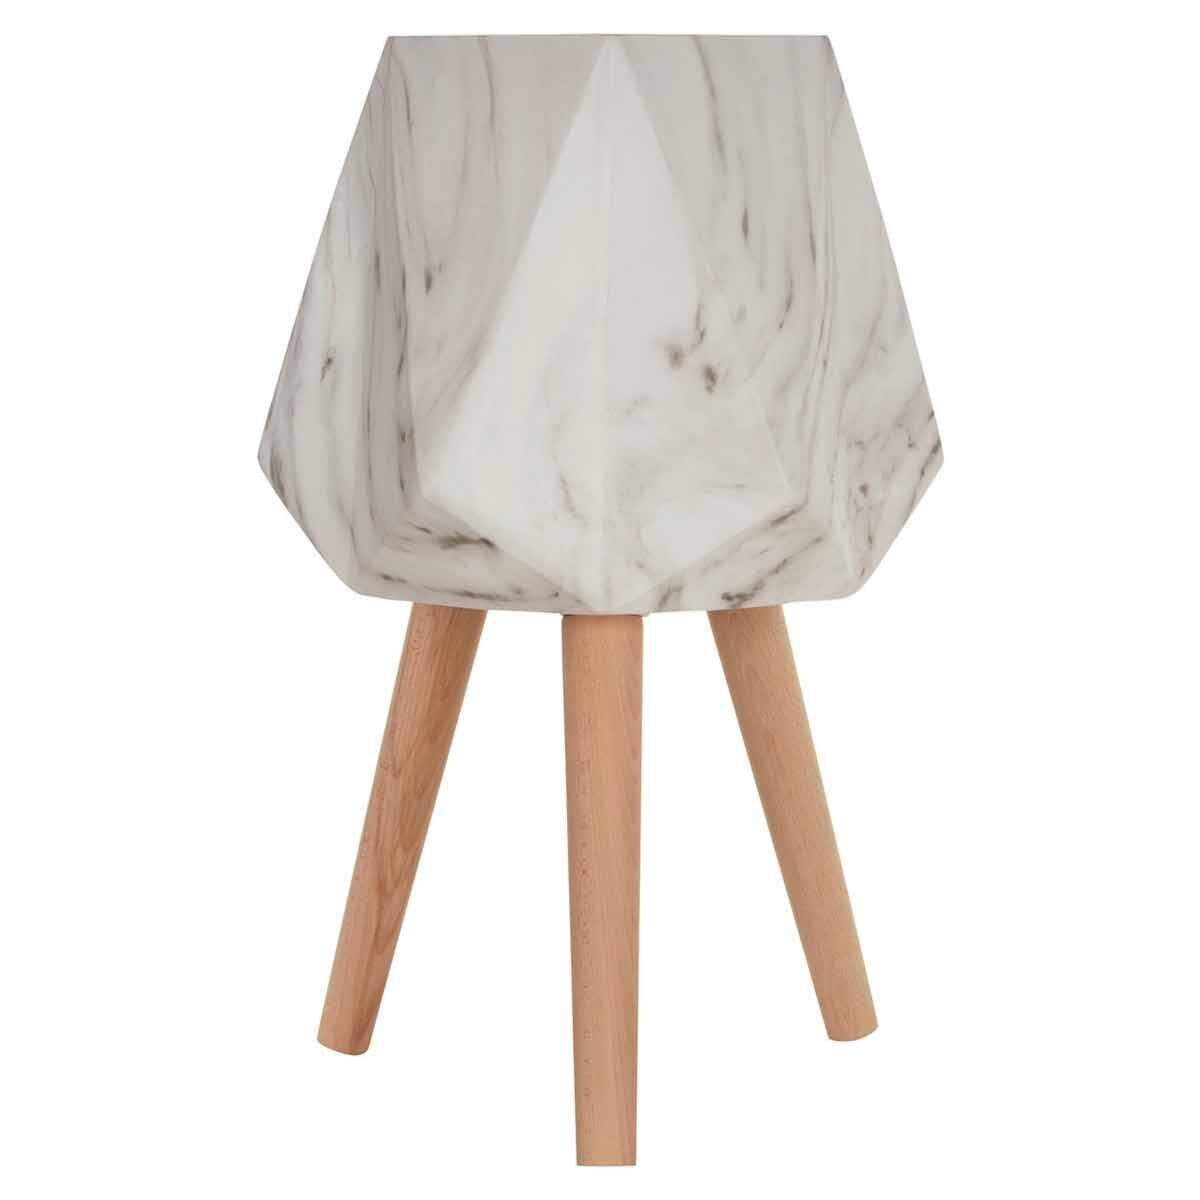 Interiors by PH Large Faux Marble Planter